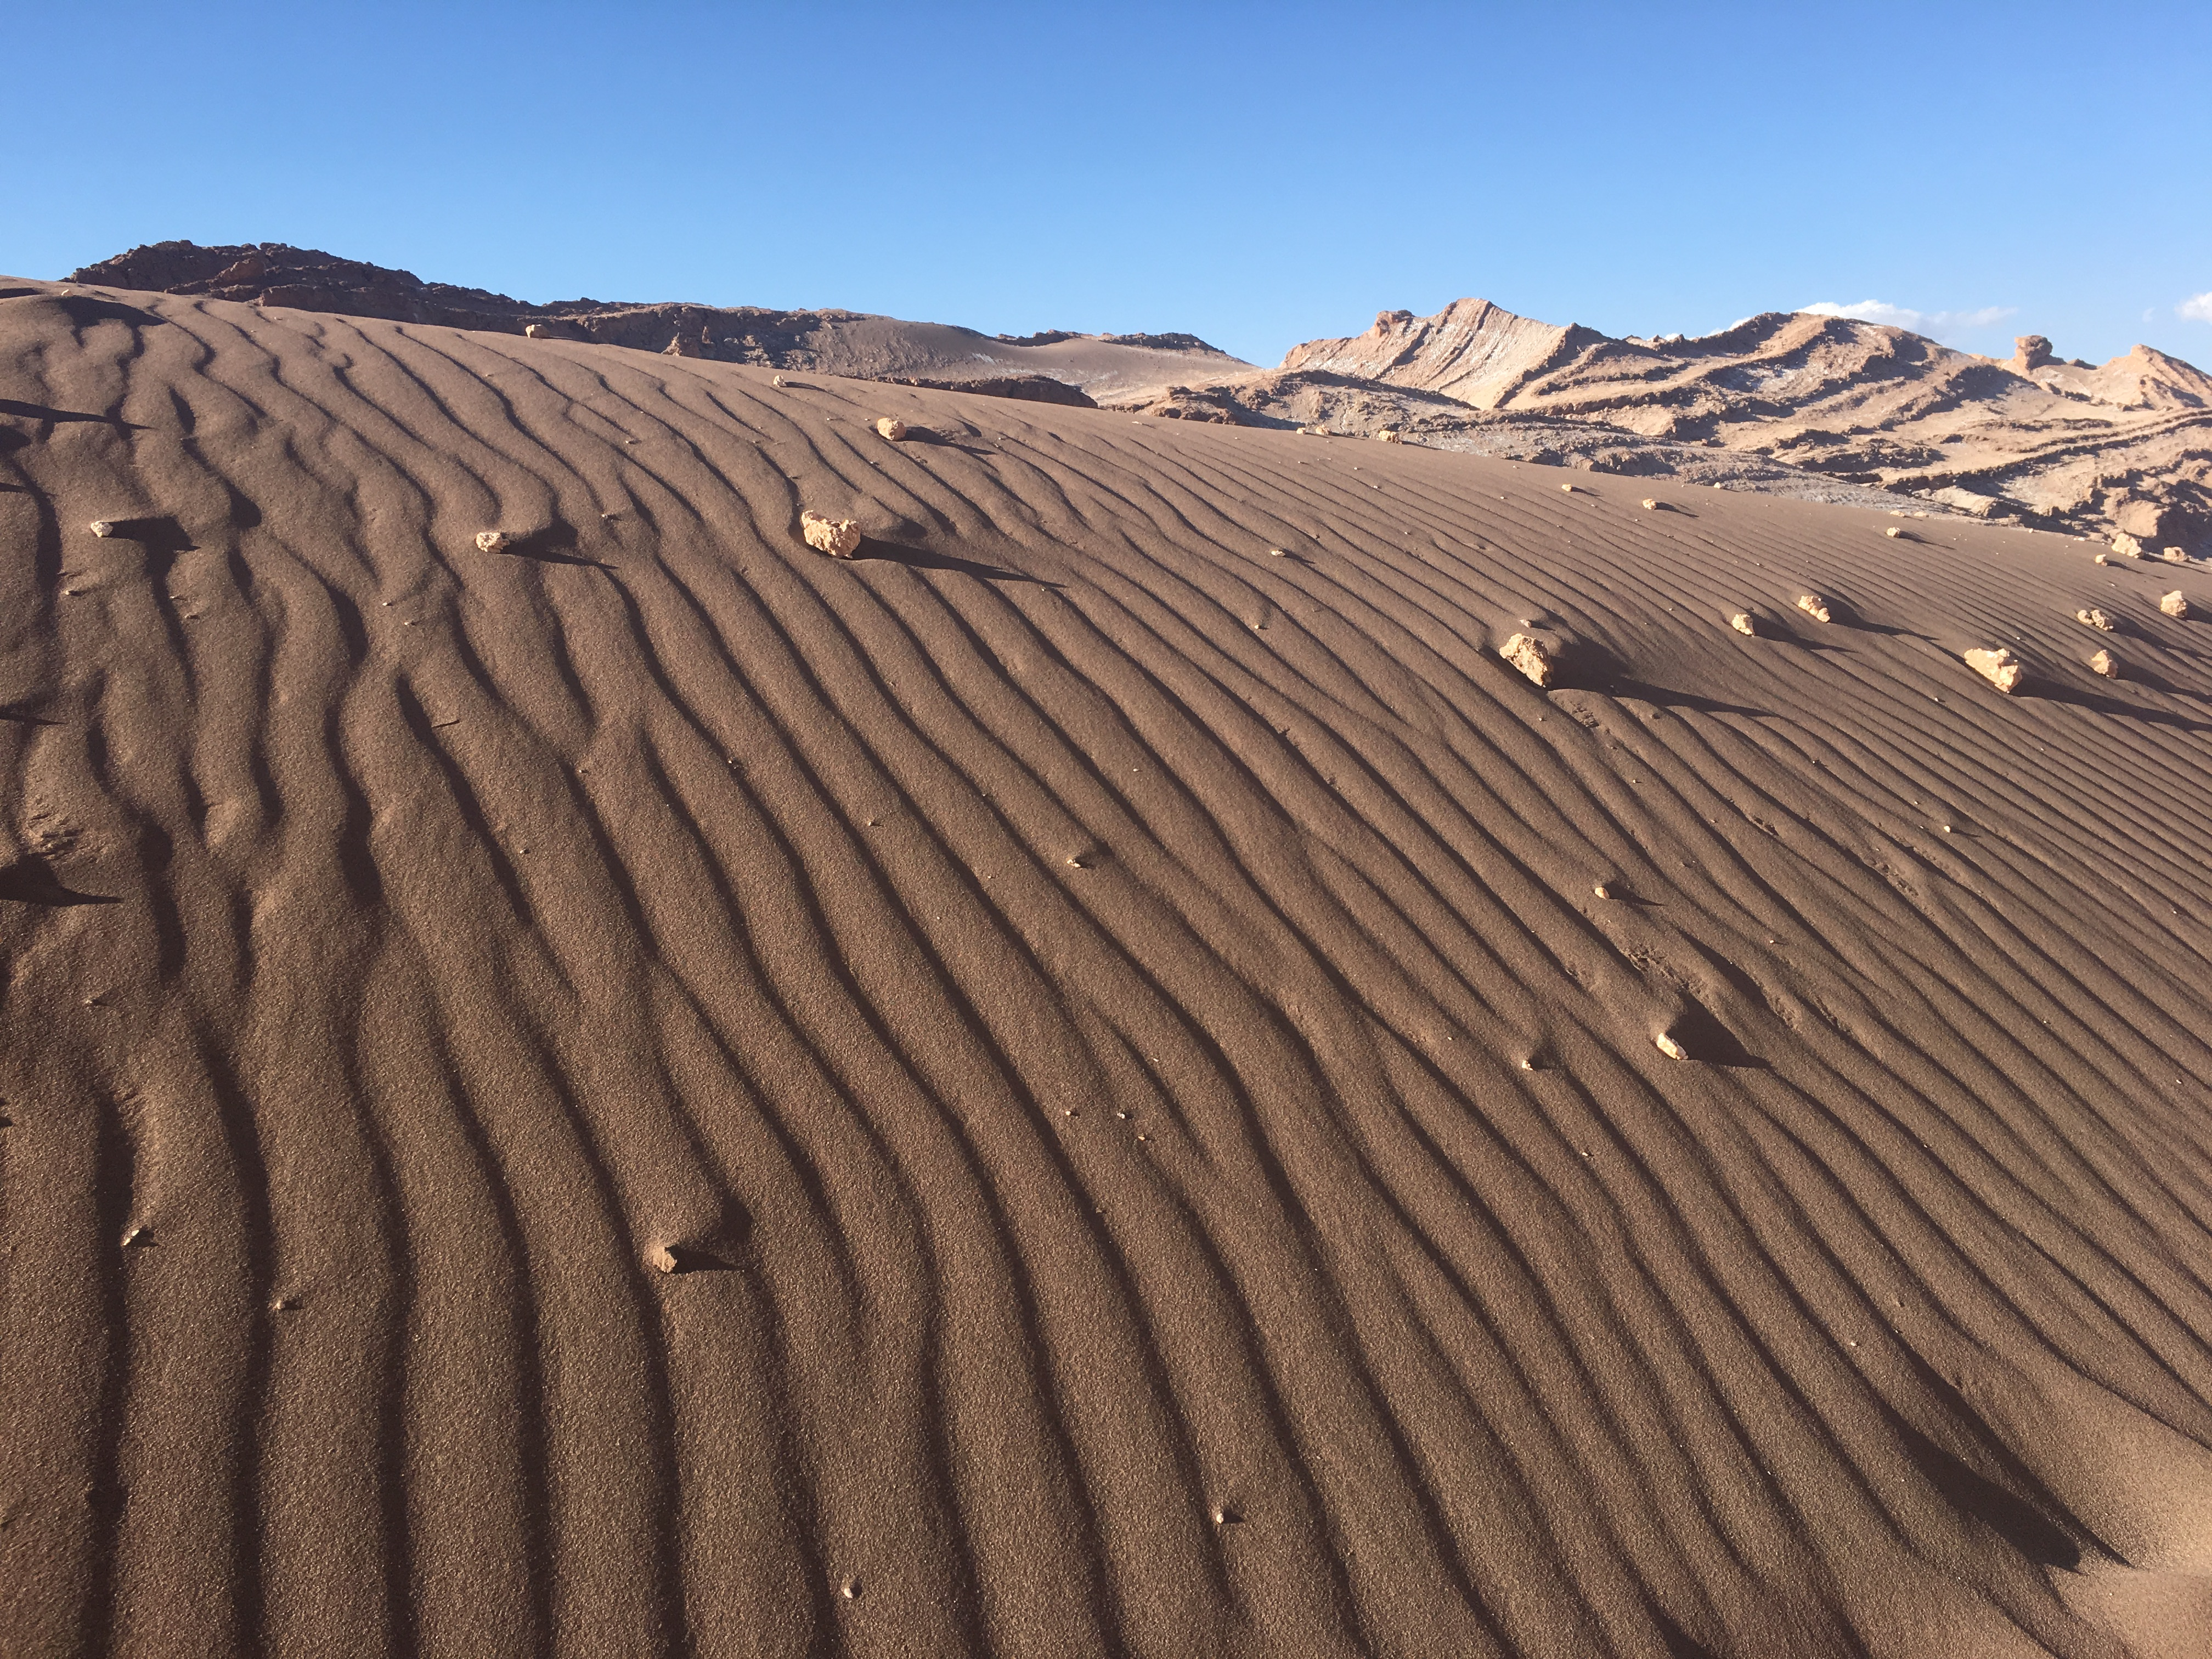 Driest Place on the Earth - Valley of the Moon, Chile